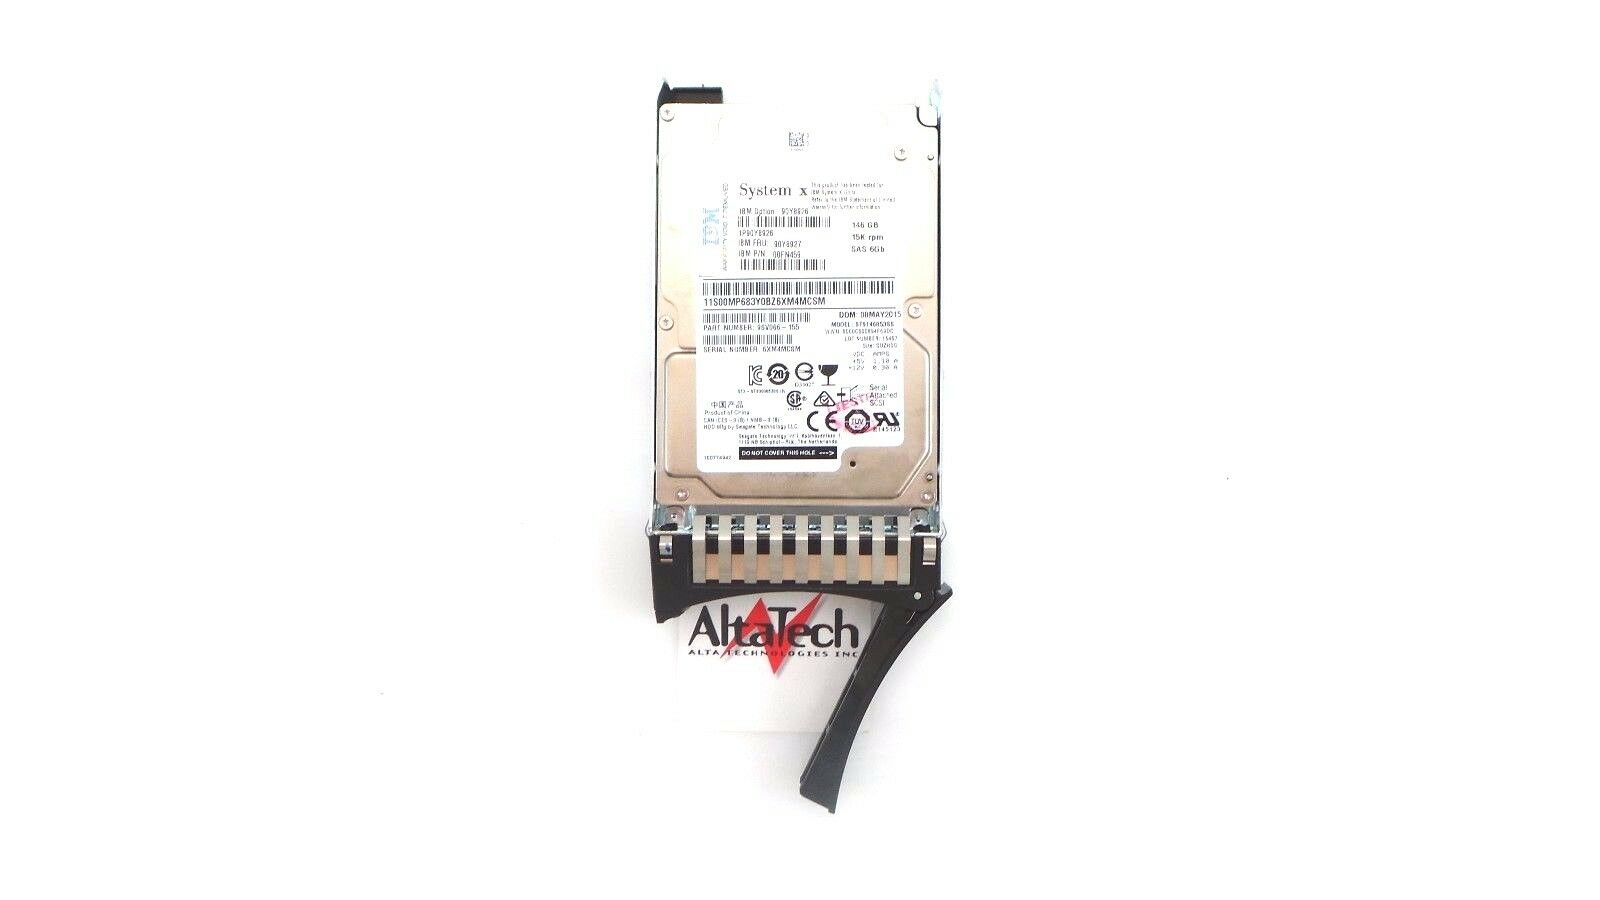 "NJYM3 9FU066-157 Dell Equallogic 146GB 15K 16MB 2.5/"" SAS Drive PN"